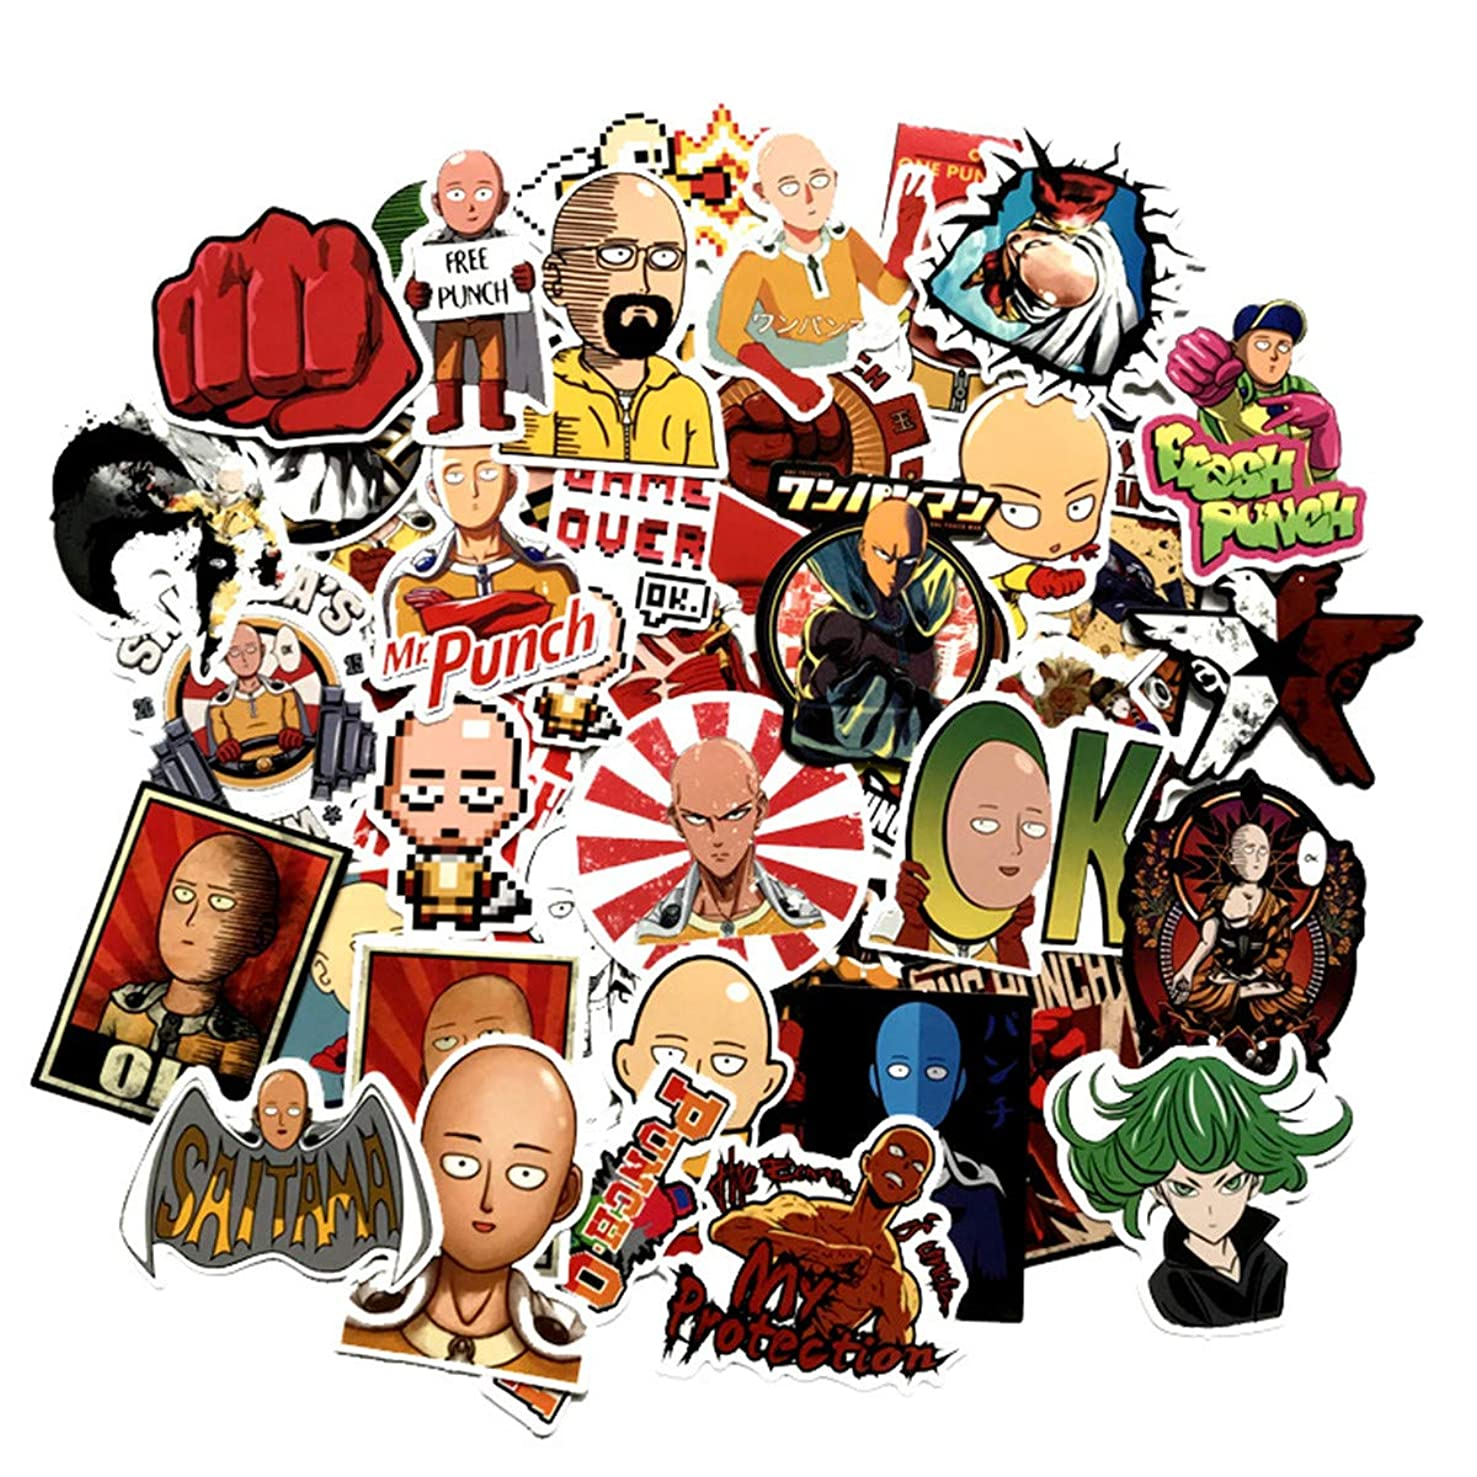 One Punch Man Graffiti Stickers Decals Pack of 50 pcs Car Stickers Motorcycle Bicycle Skateboard Luggage Phone Pad Laptop Stickers and Bumper Patches Decals Waterproof (ONE Punch-Man)